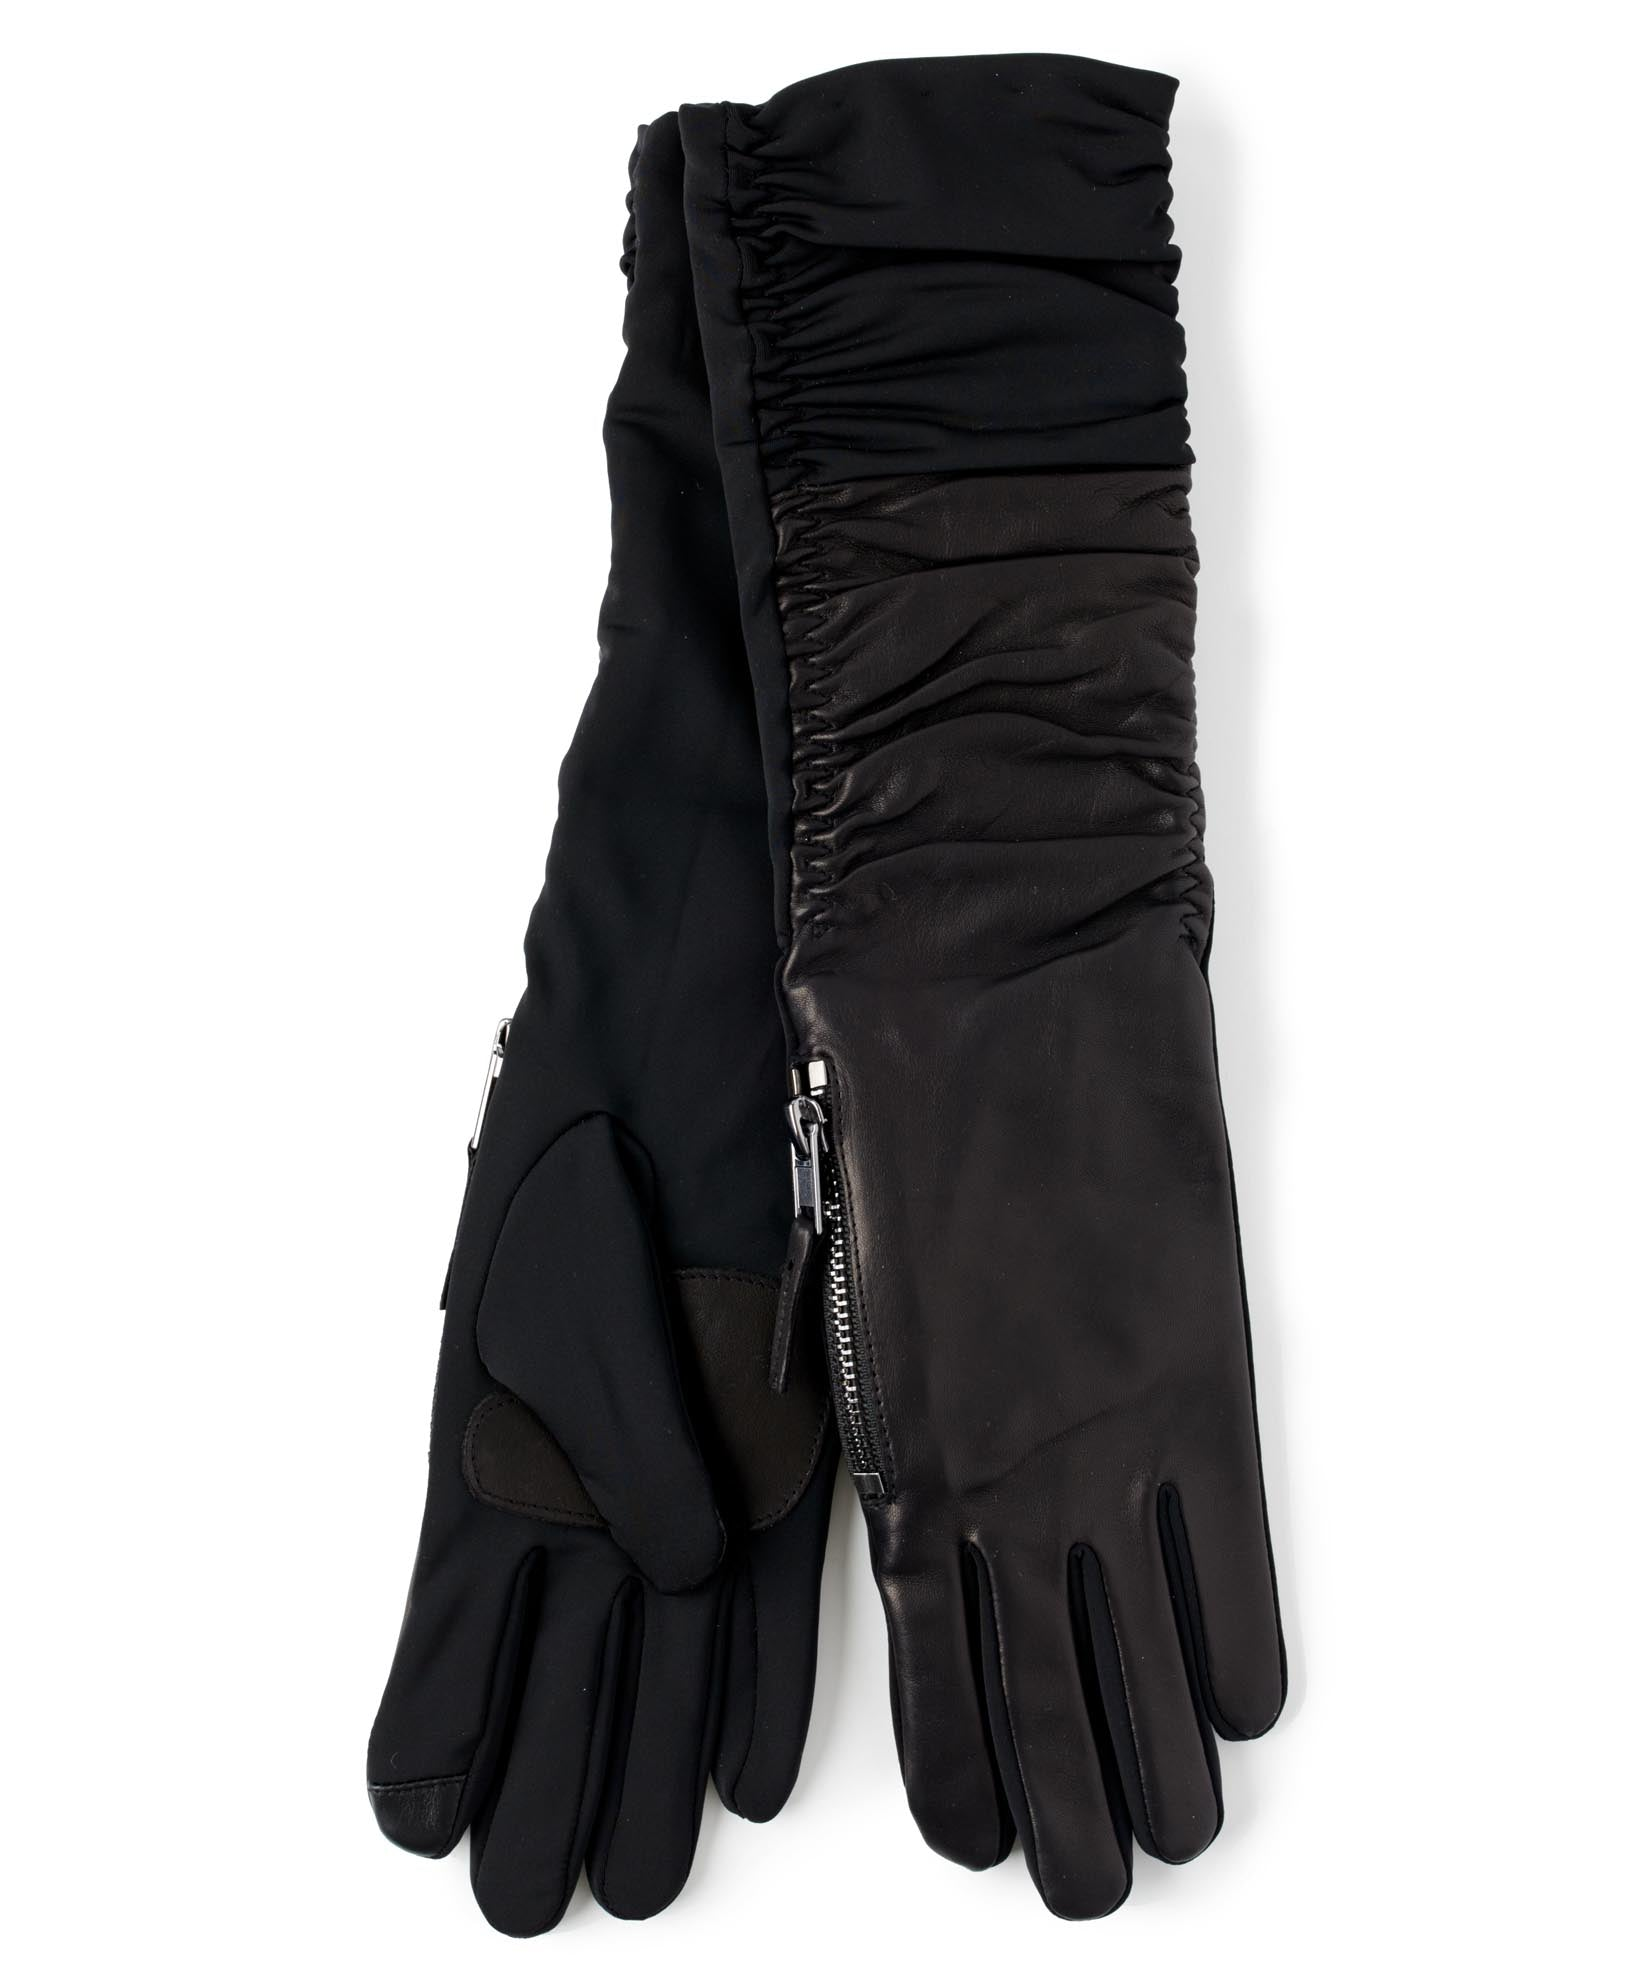 Black - On The Go Glove